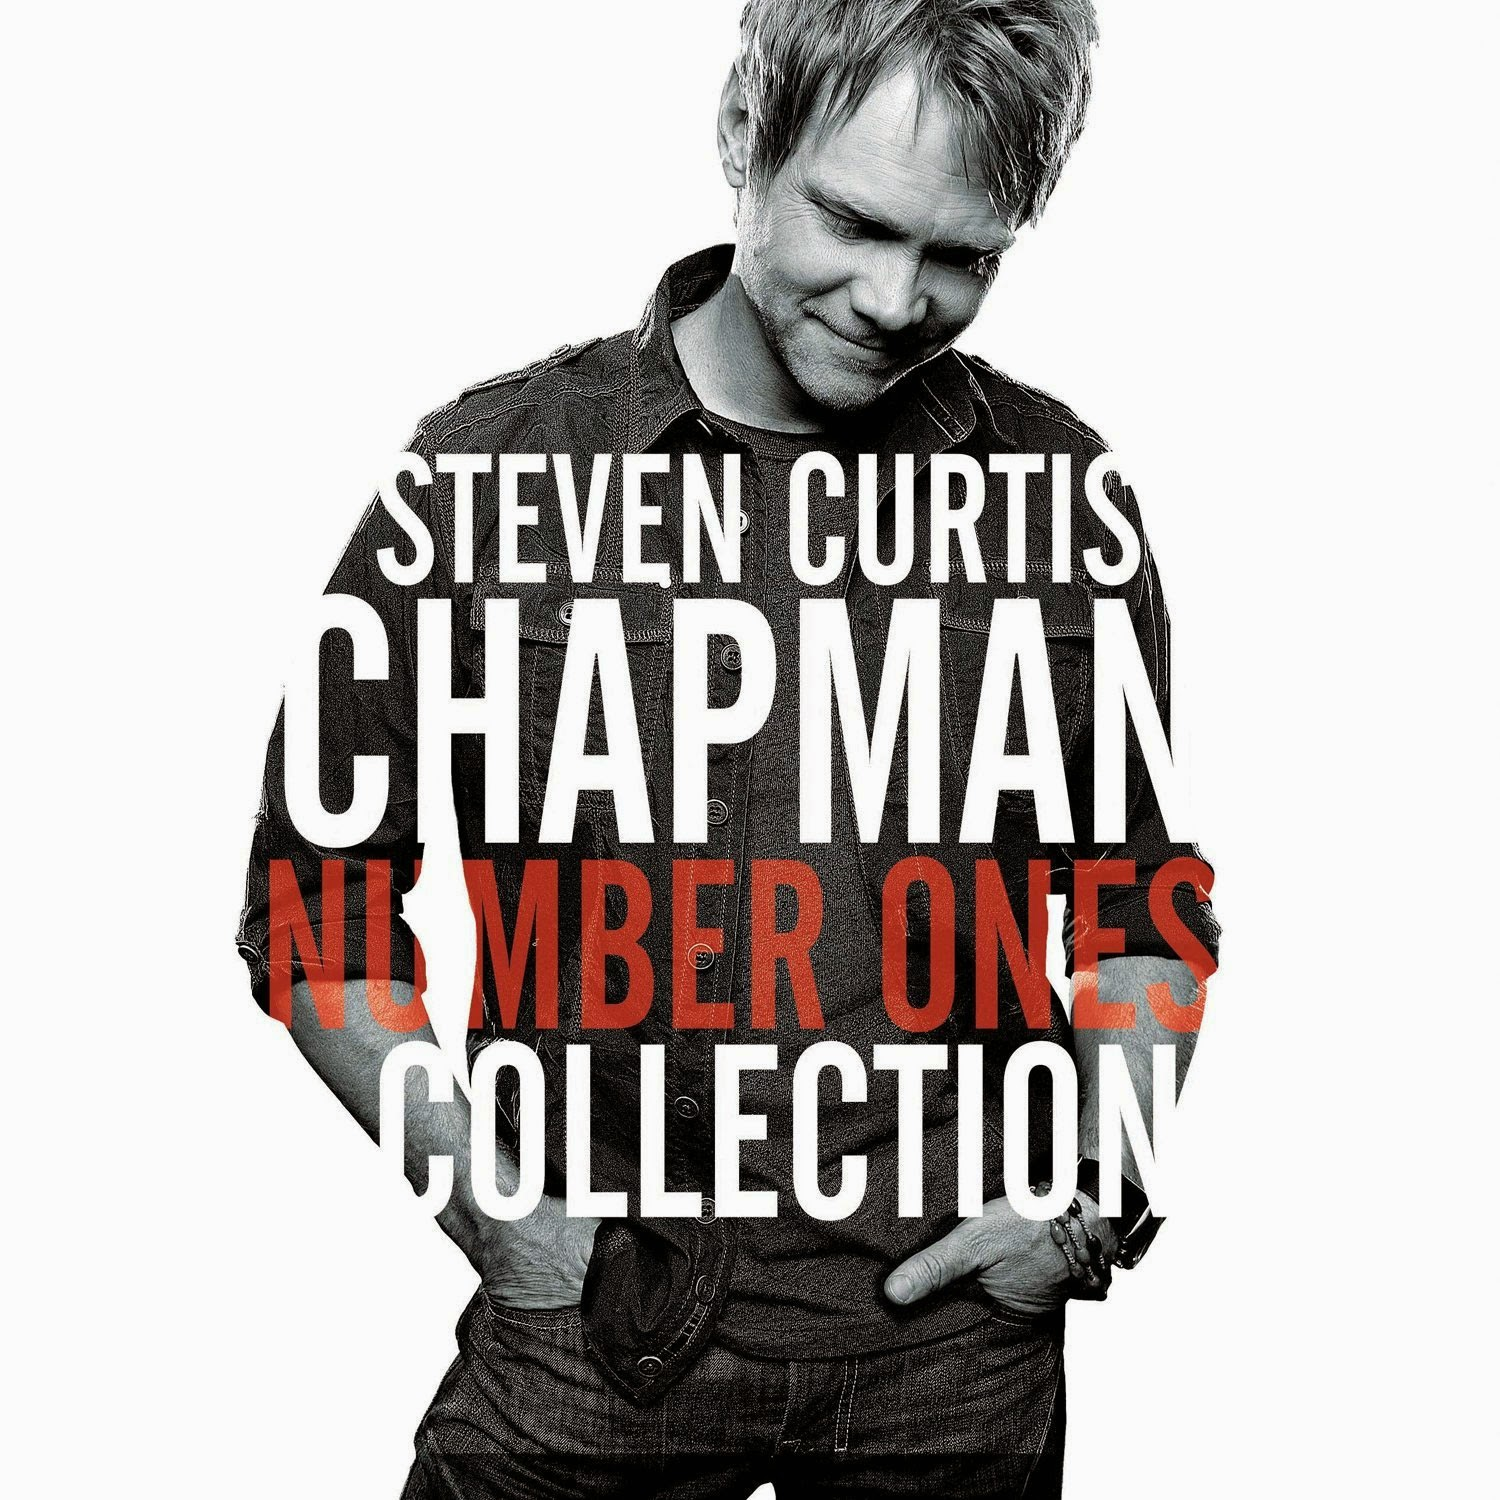 Steven Curtis Chapman - Number Ones Collection 2014 English Christian Album Download